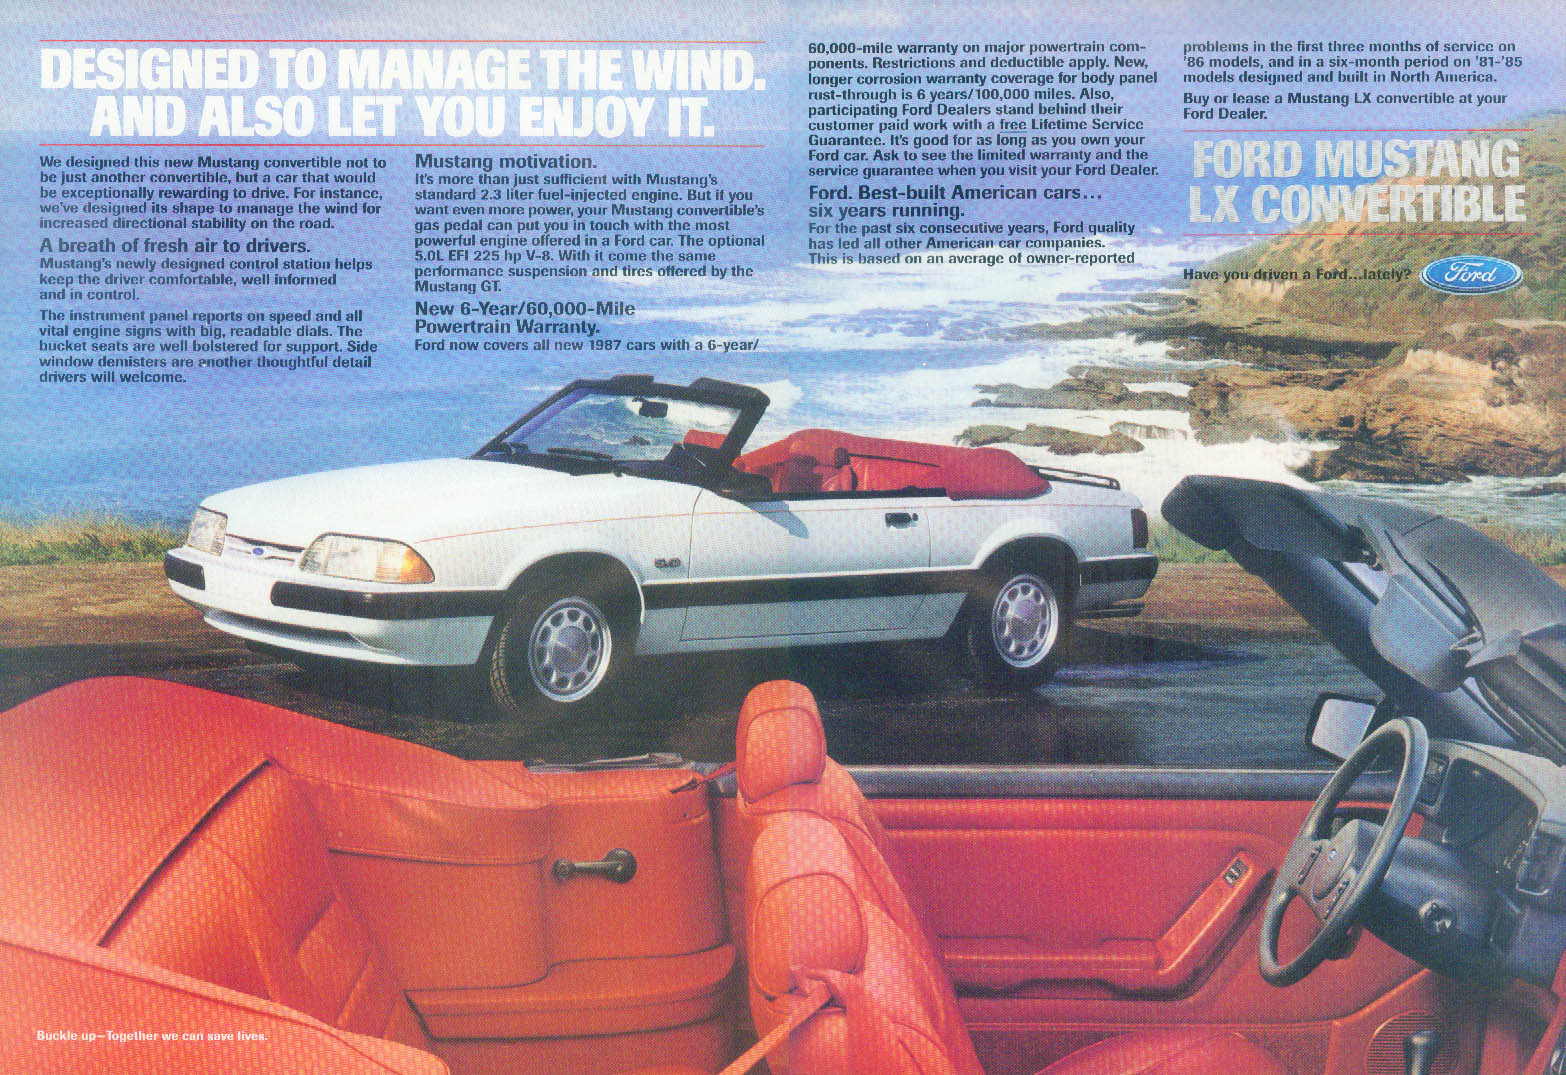 Designed to manage the wind Ford Mustang LX Convertible ad 1987